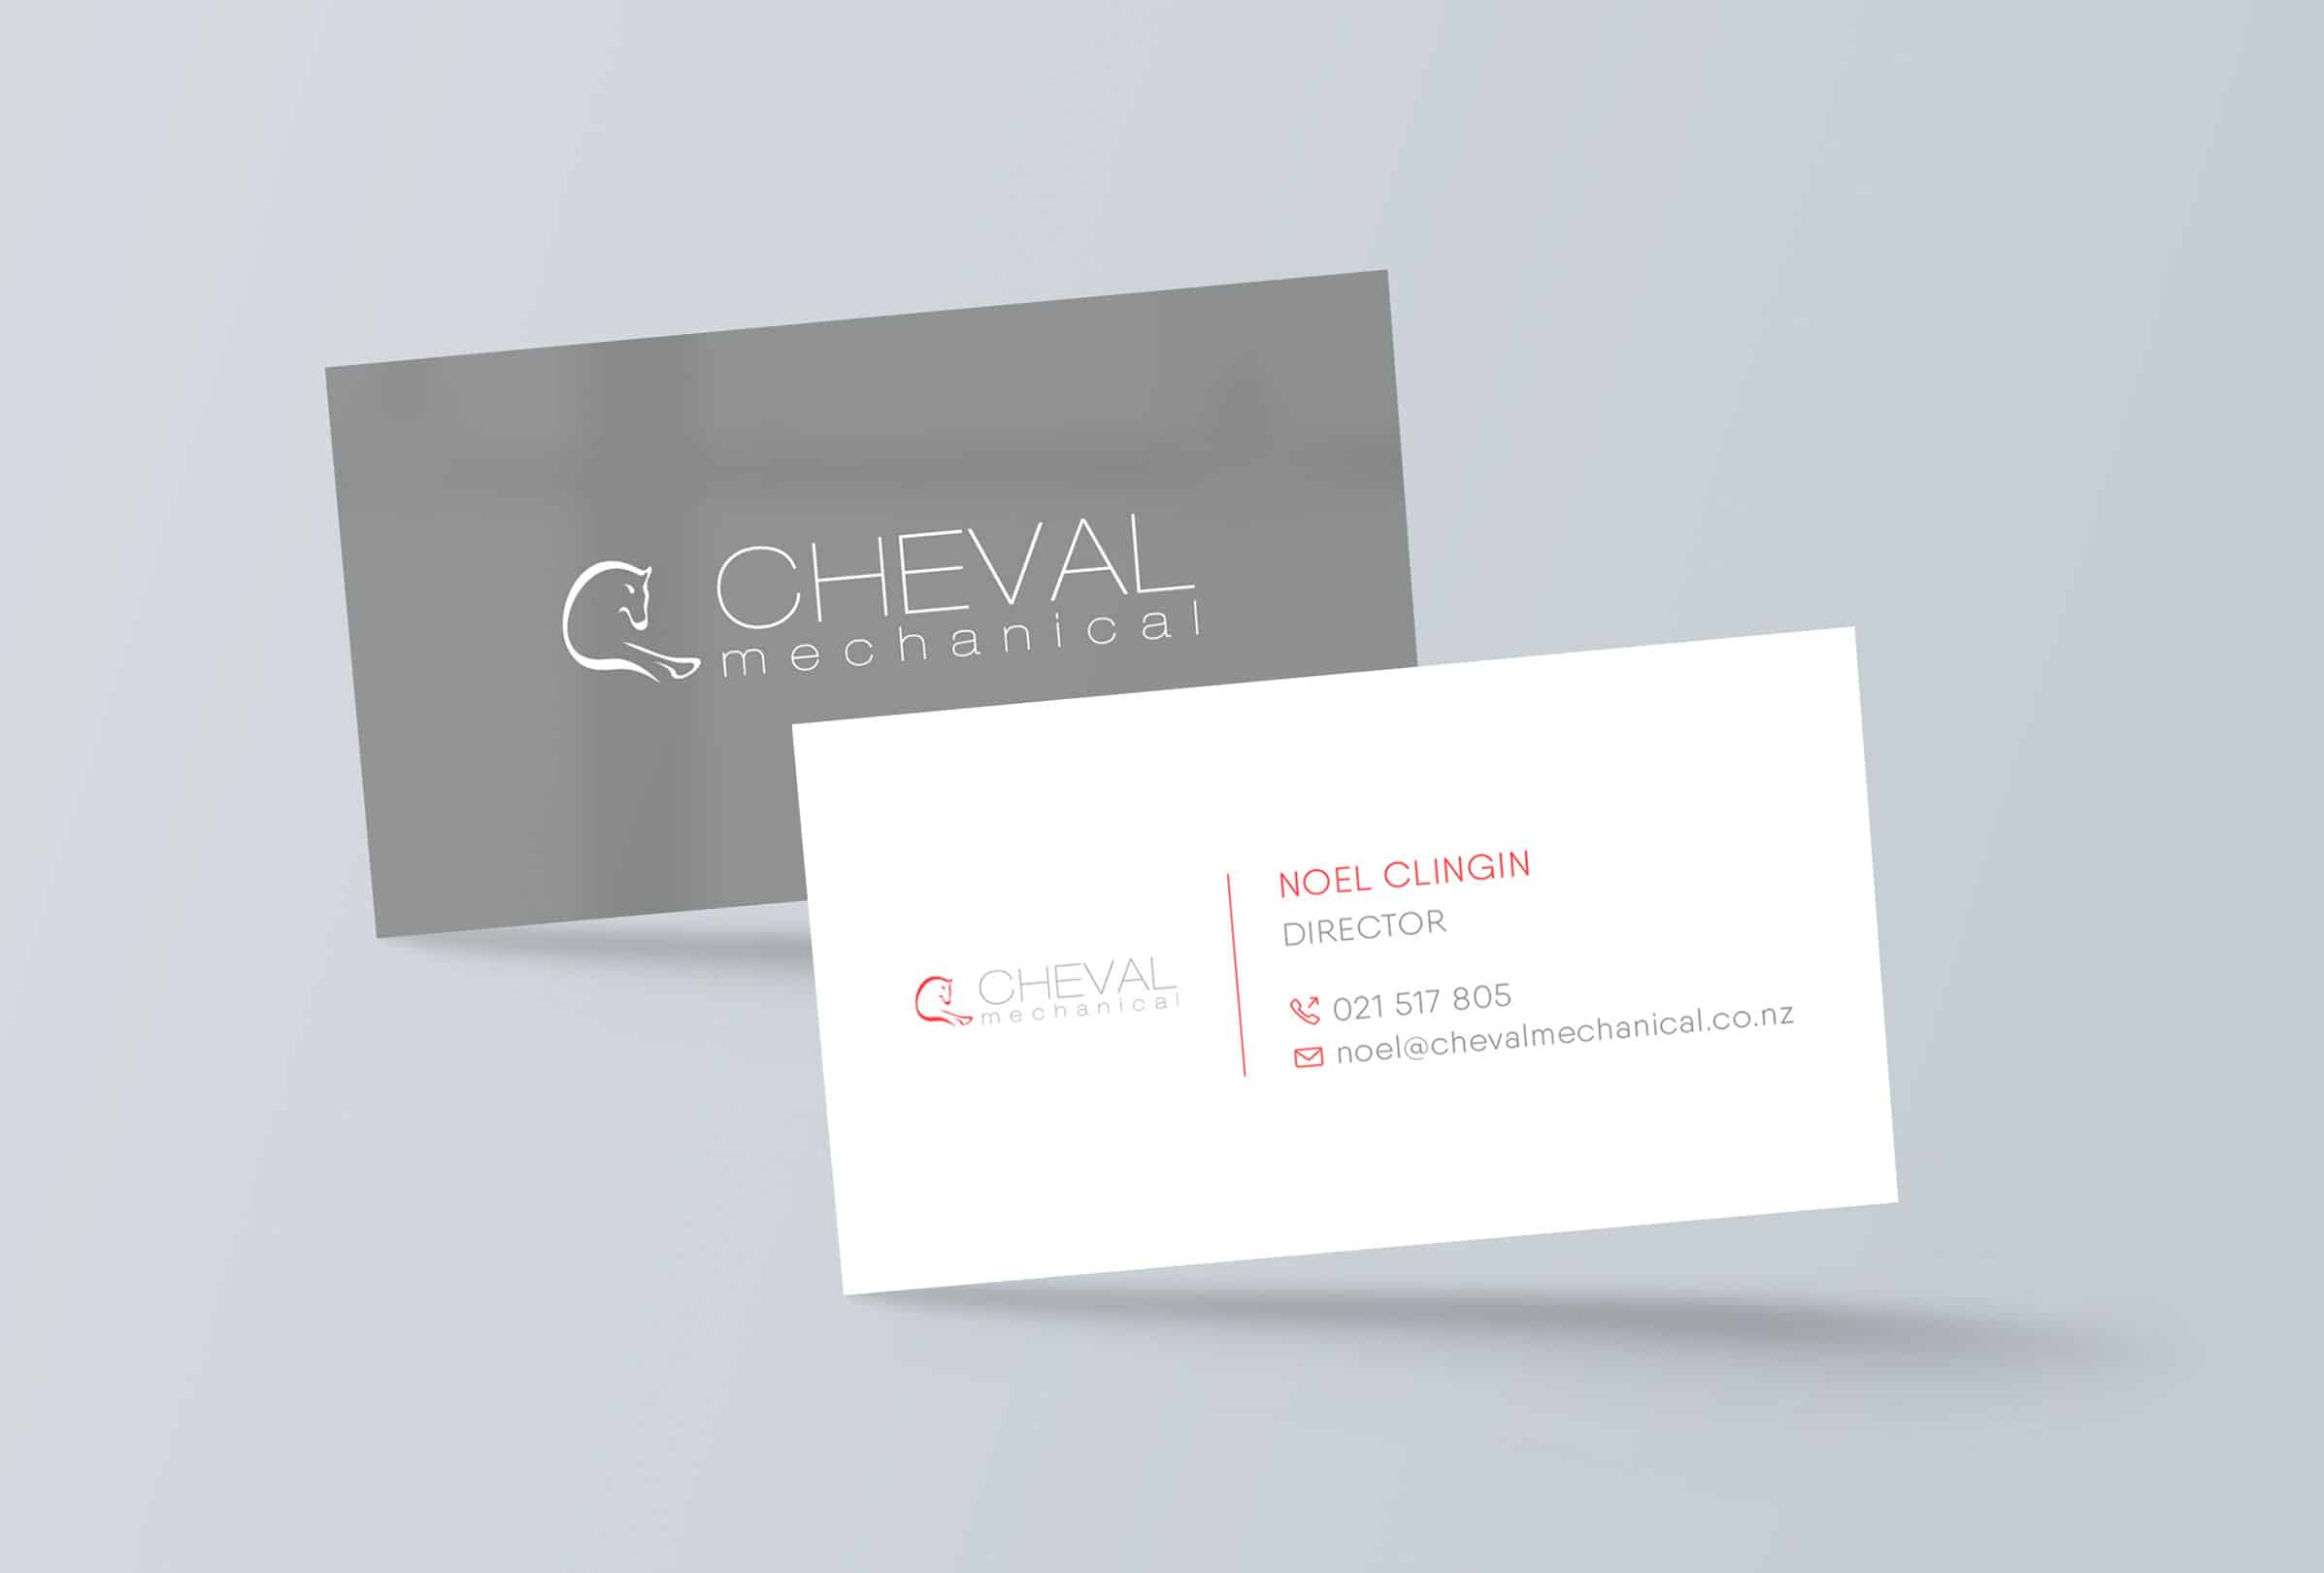 Graphic design services - business card design